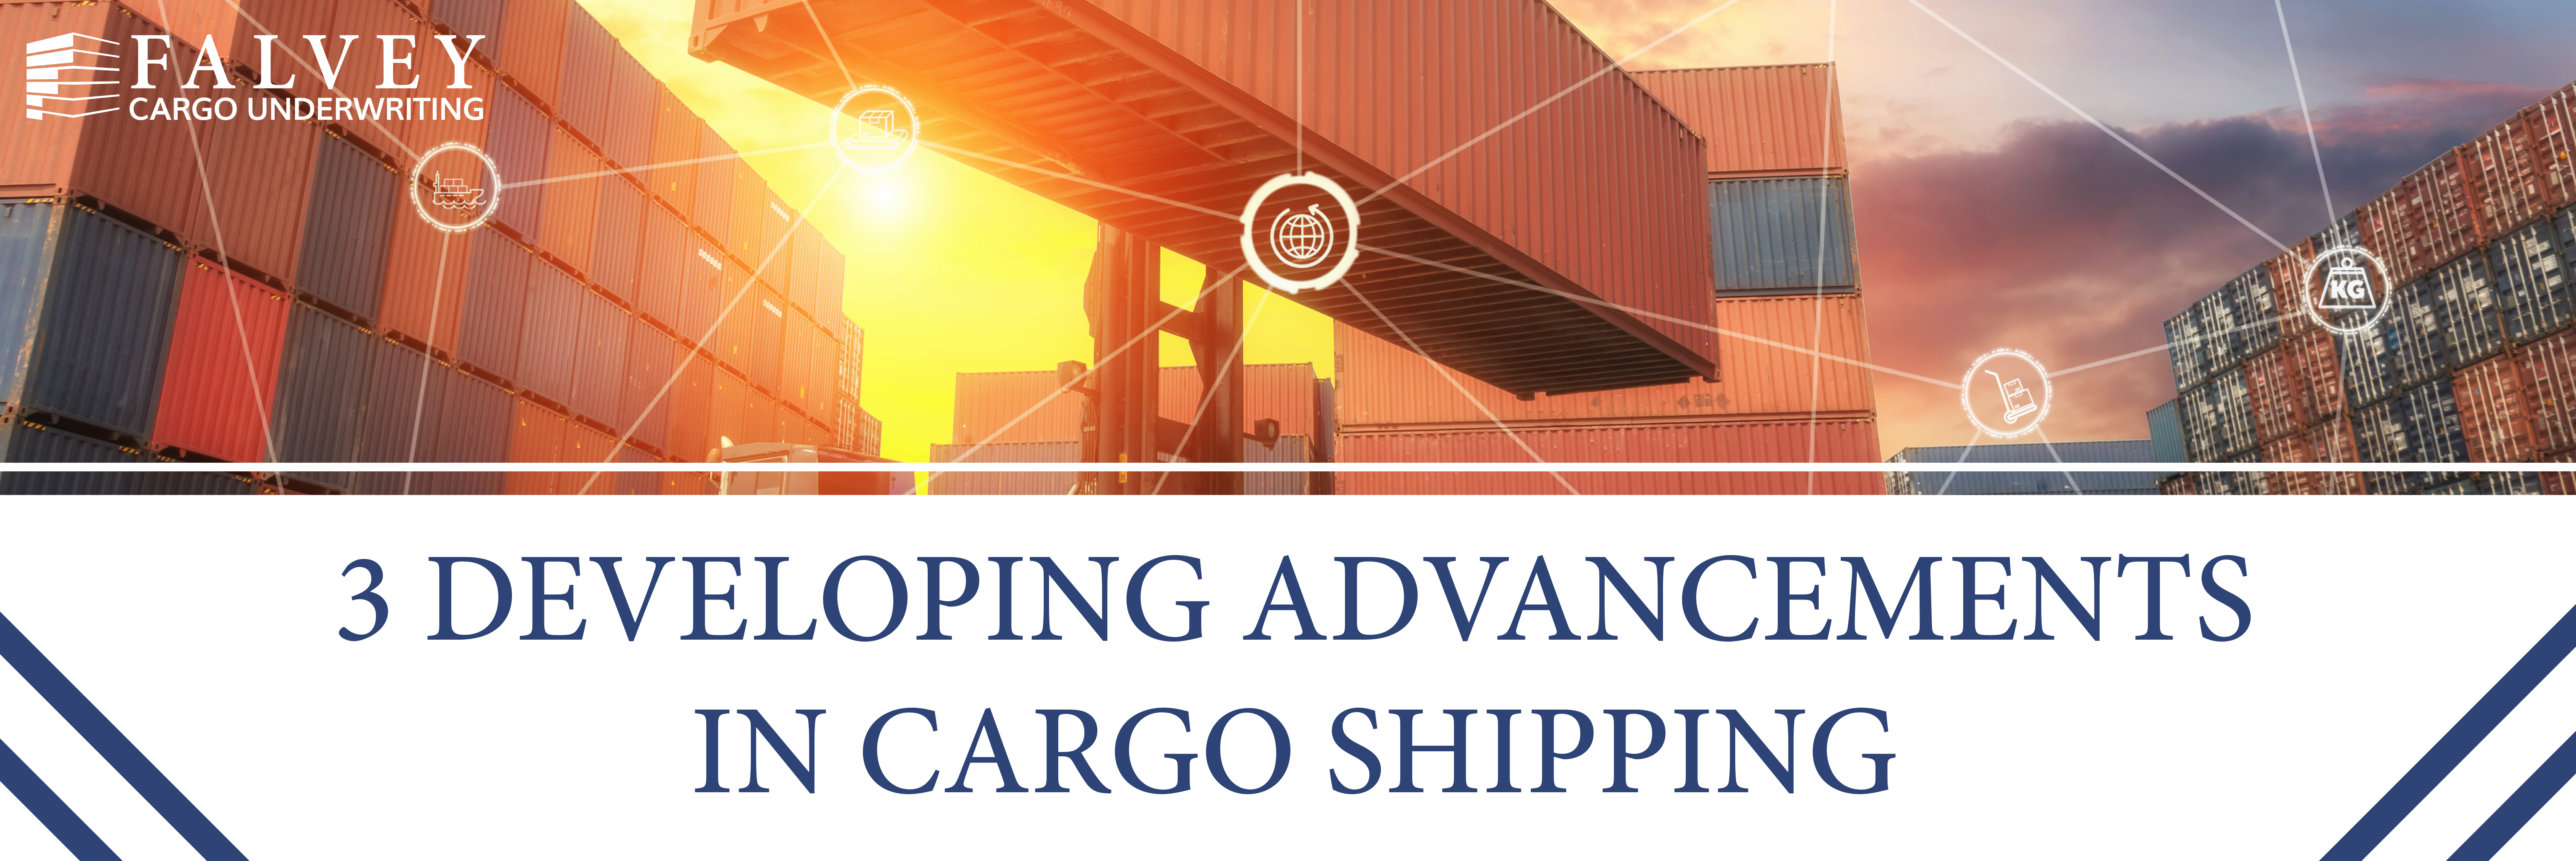 Advances In Cargo Website